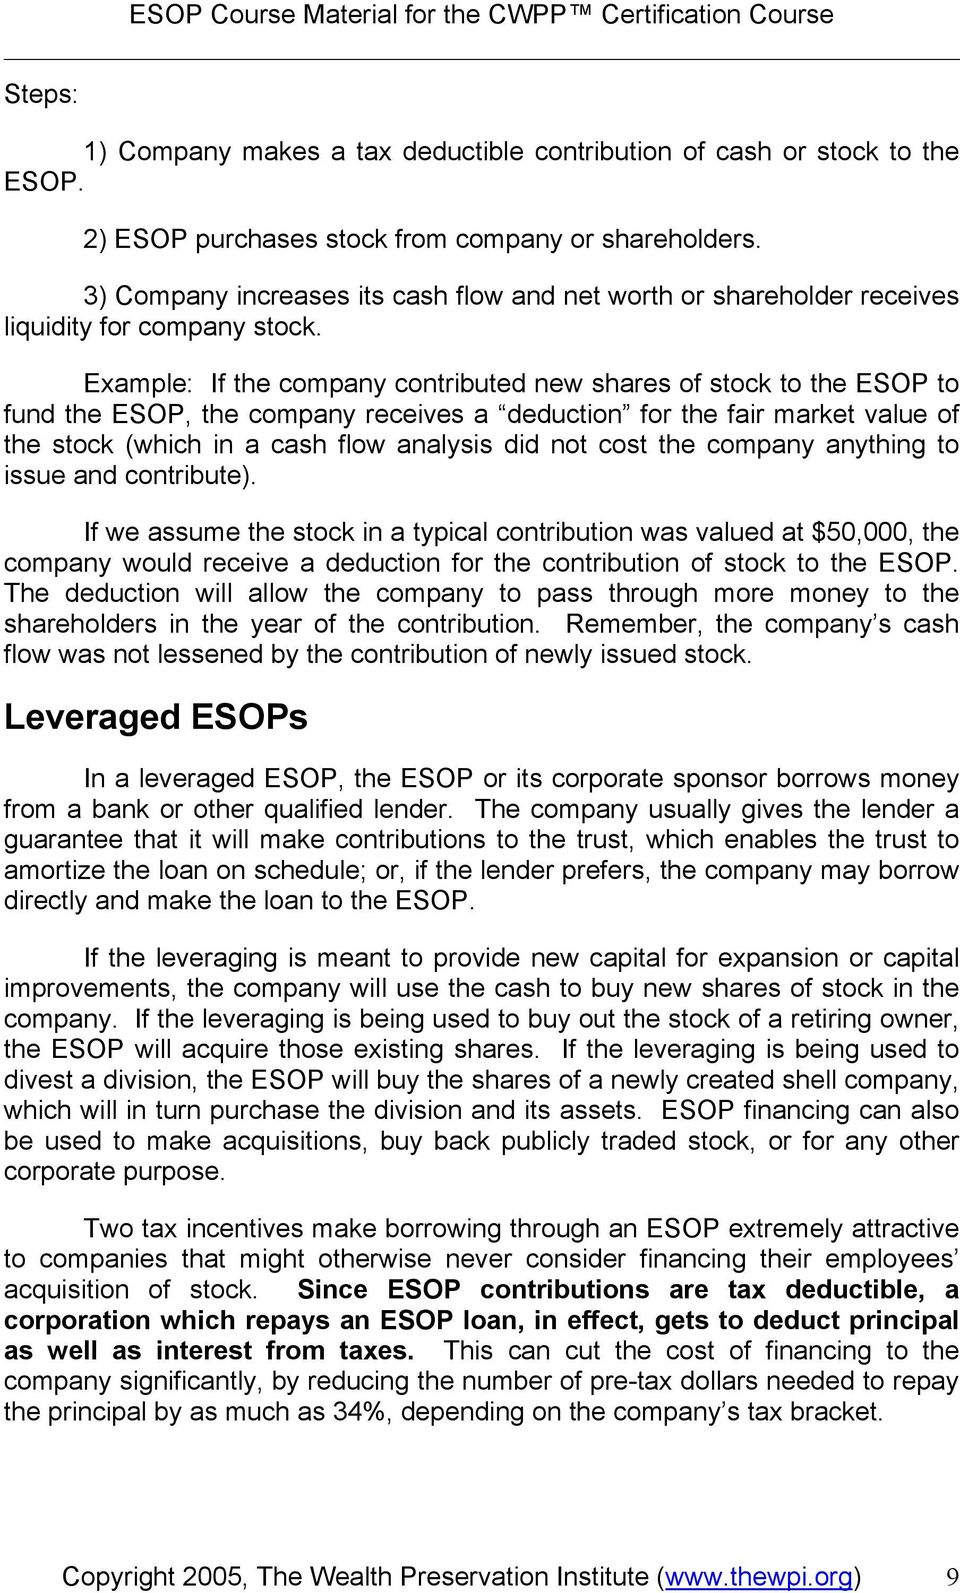 Example: If the company contributed new shares of stock to the ESOP to fund the ESOP, the company receives a deduction for the fair market value of the stock (which in a cash flow analysis did not